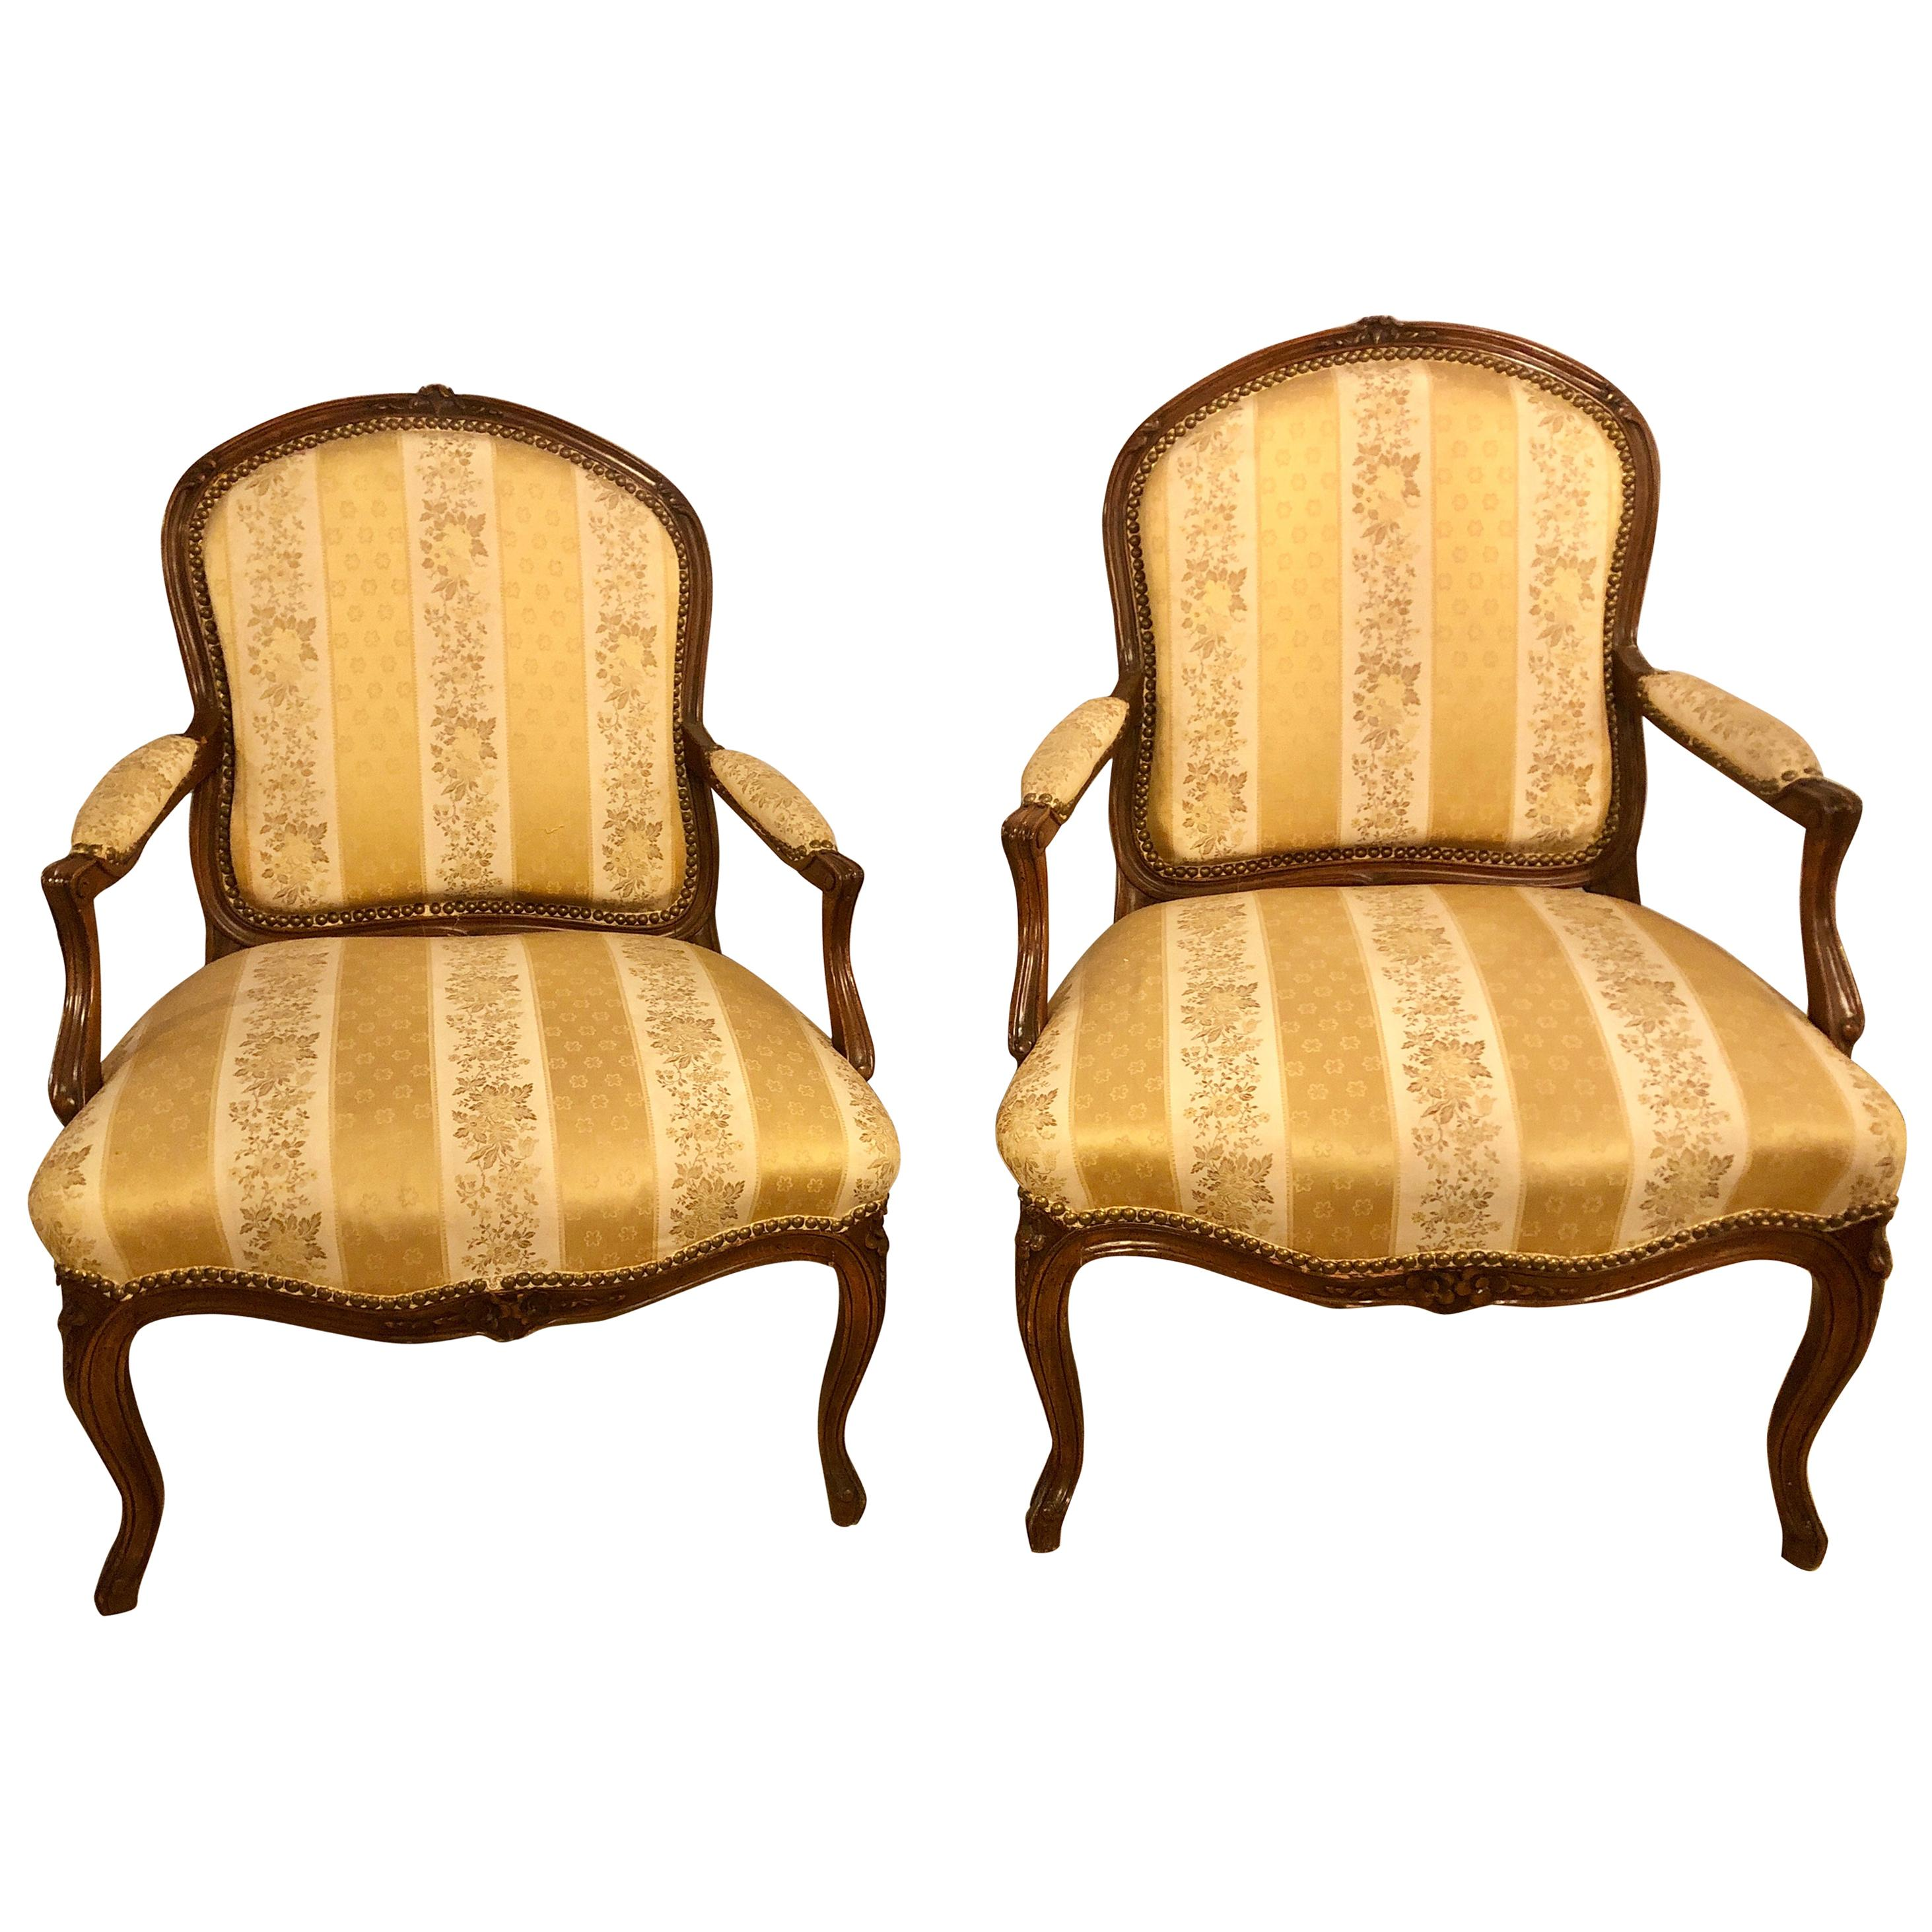 Pair of French Louis XV Style Walnut Arm-Chairs Bergeres in a Fine Upholstery